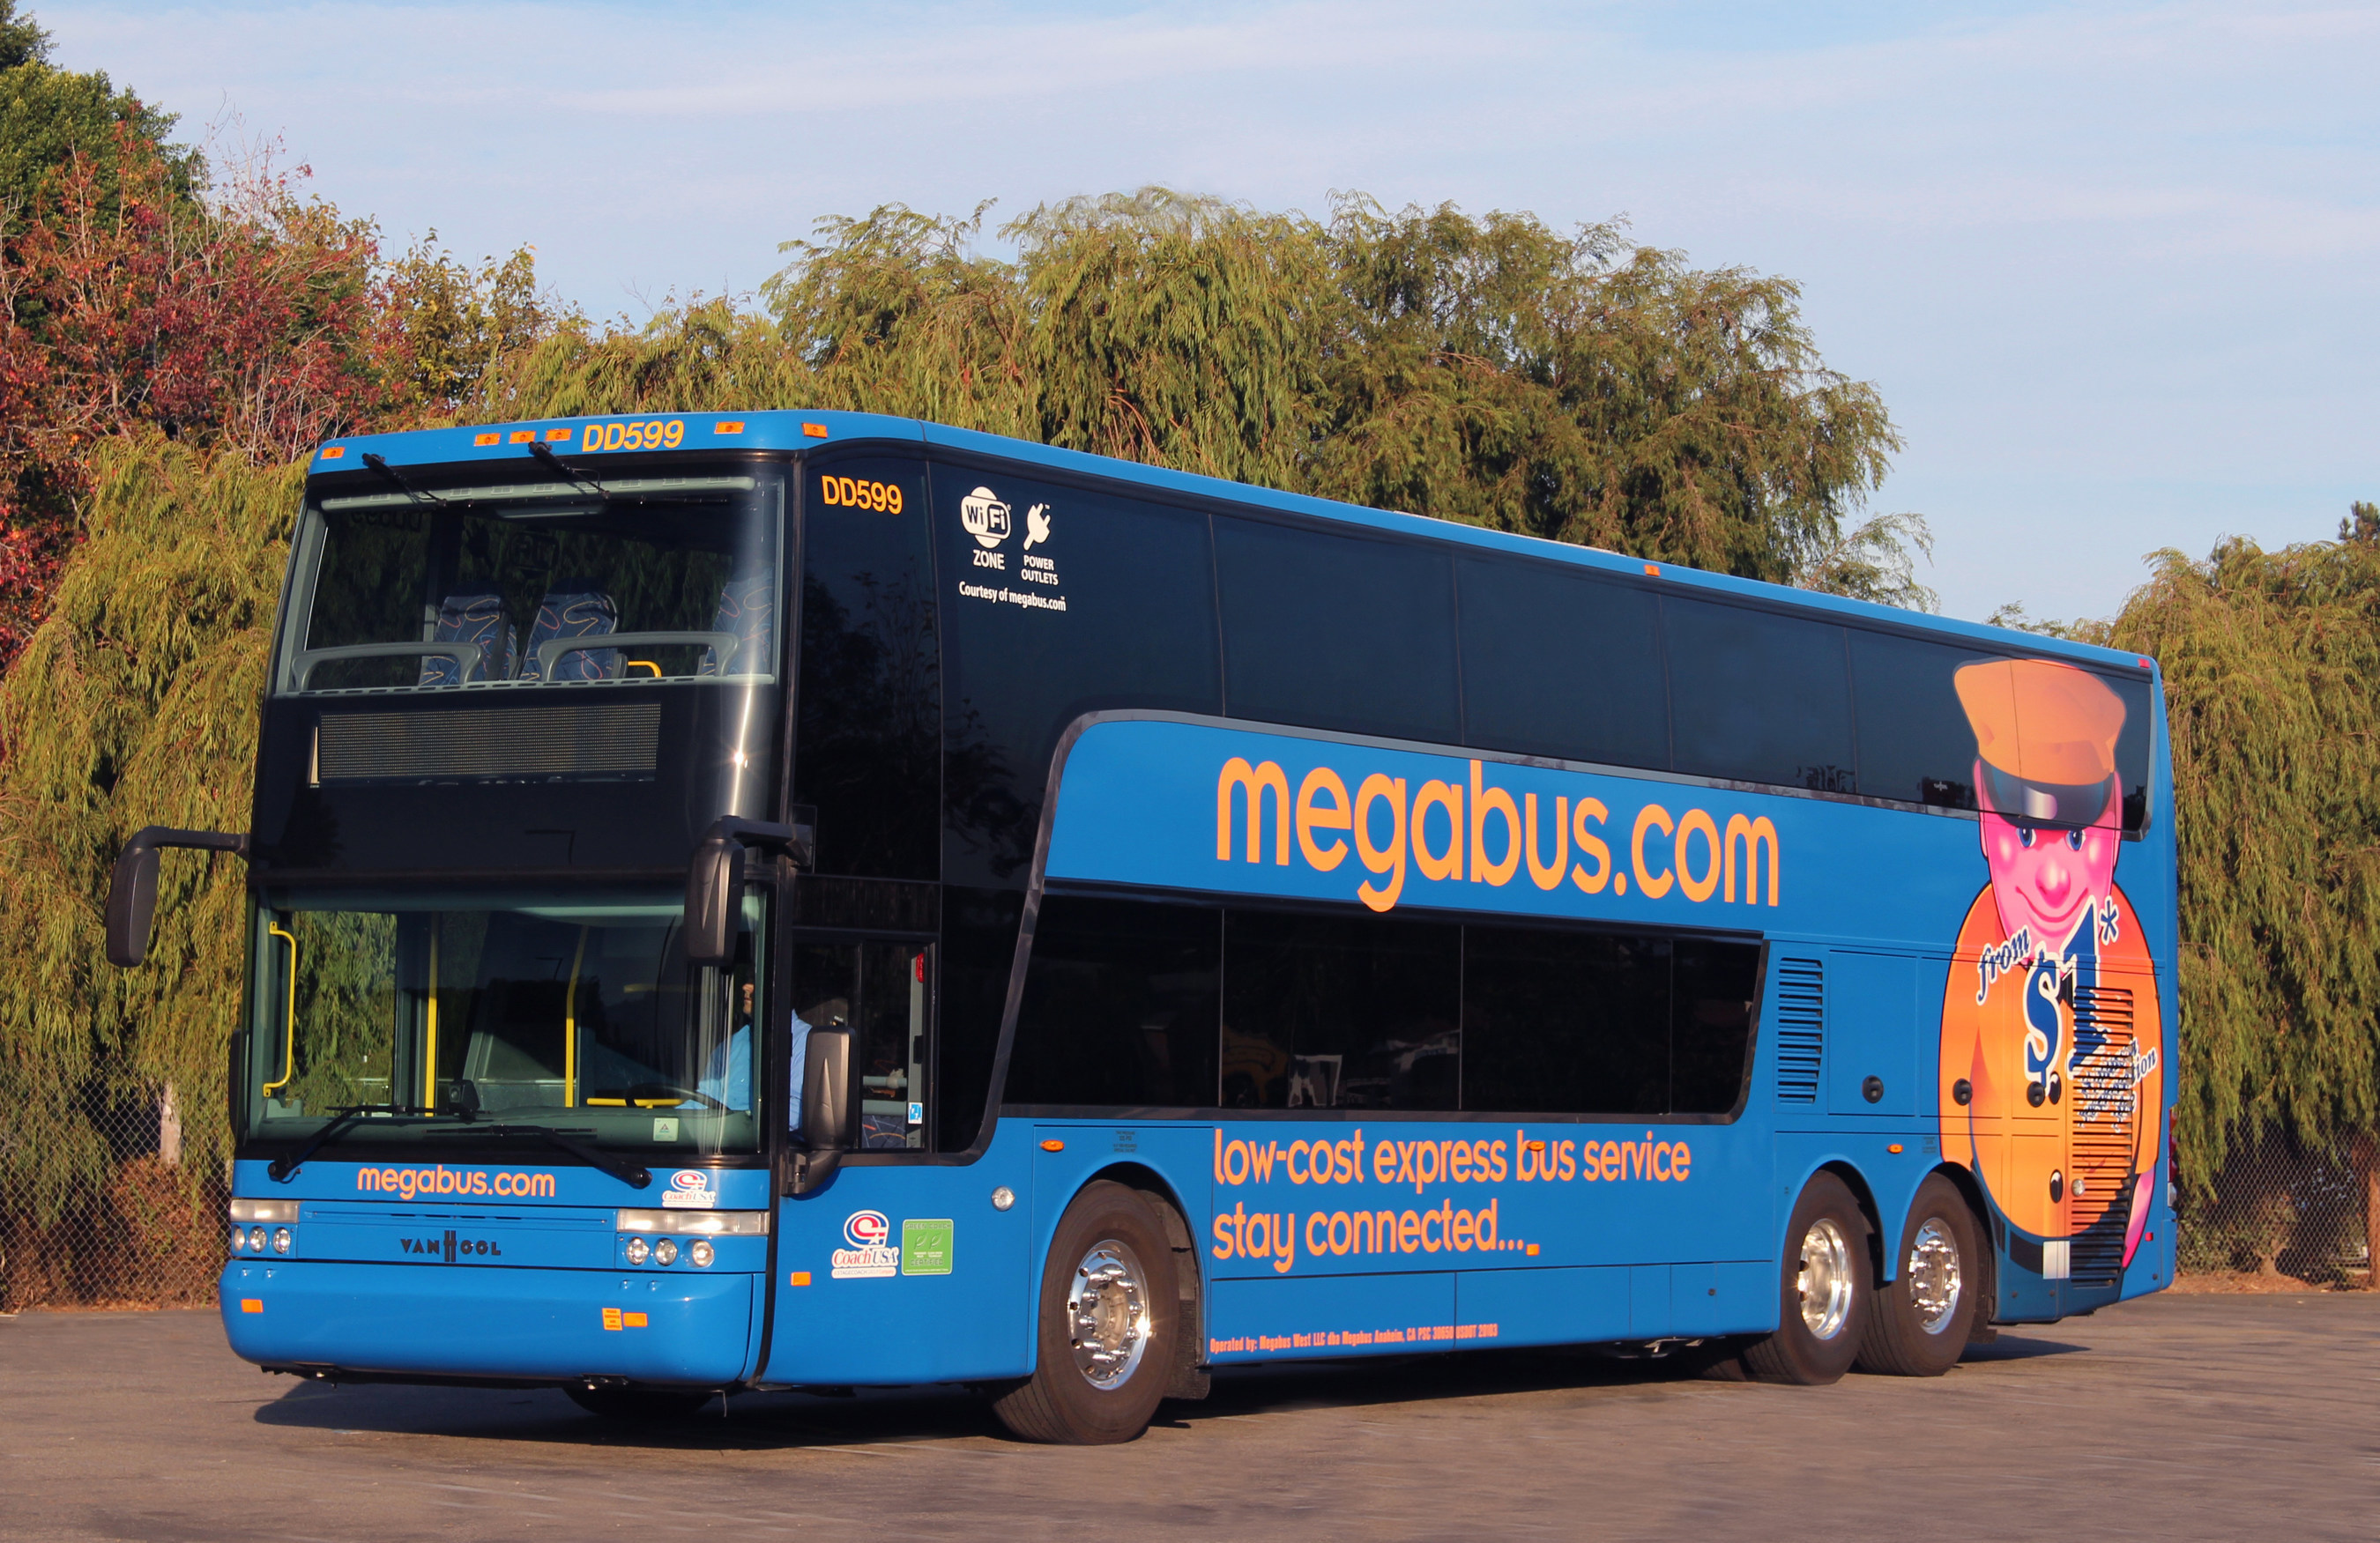 megabus and coach usa invest millions in greenroad eco-driving